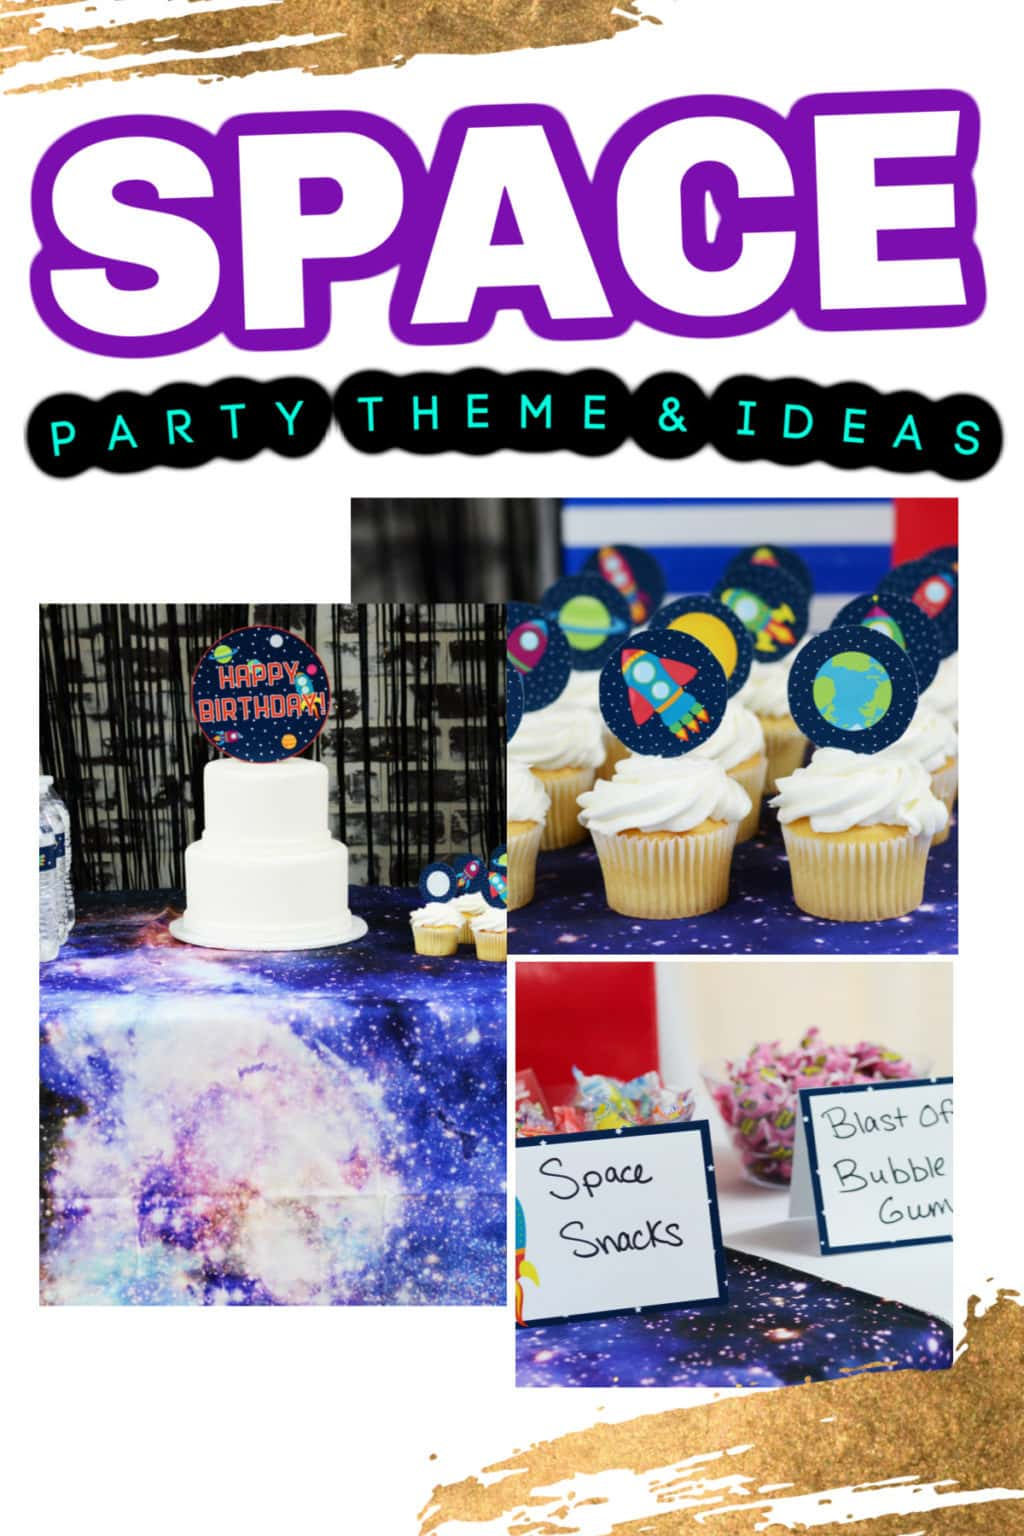 Space Party Ideas | Space Themed Gifts | Outer Space Gifts | Space Party Inspiration | Astronaut Gifts | Rocket Ship Gifts | Moon Cake | Planet Decorations | #space #partyplanning #party #gifting